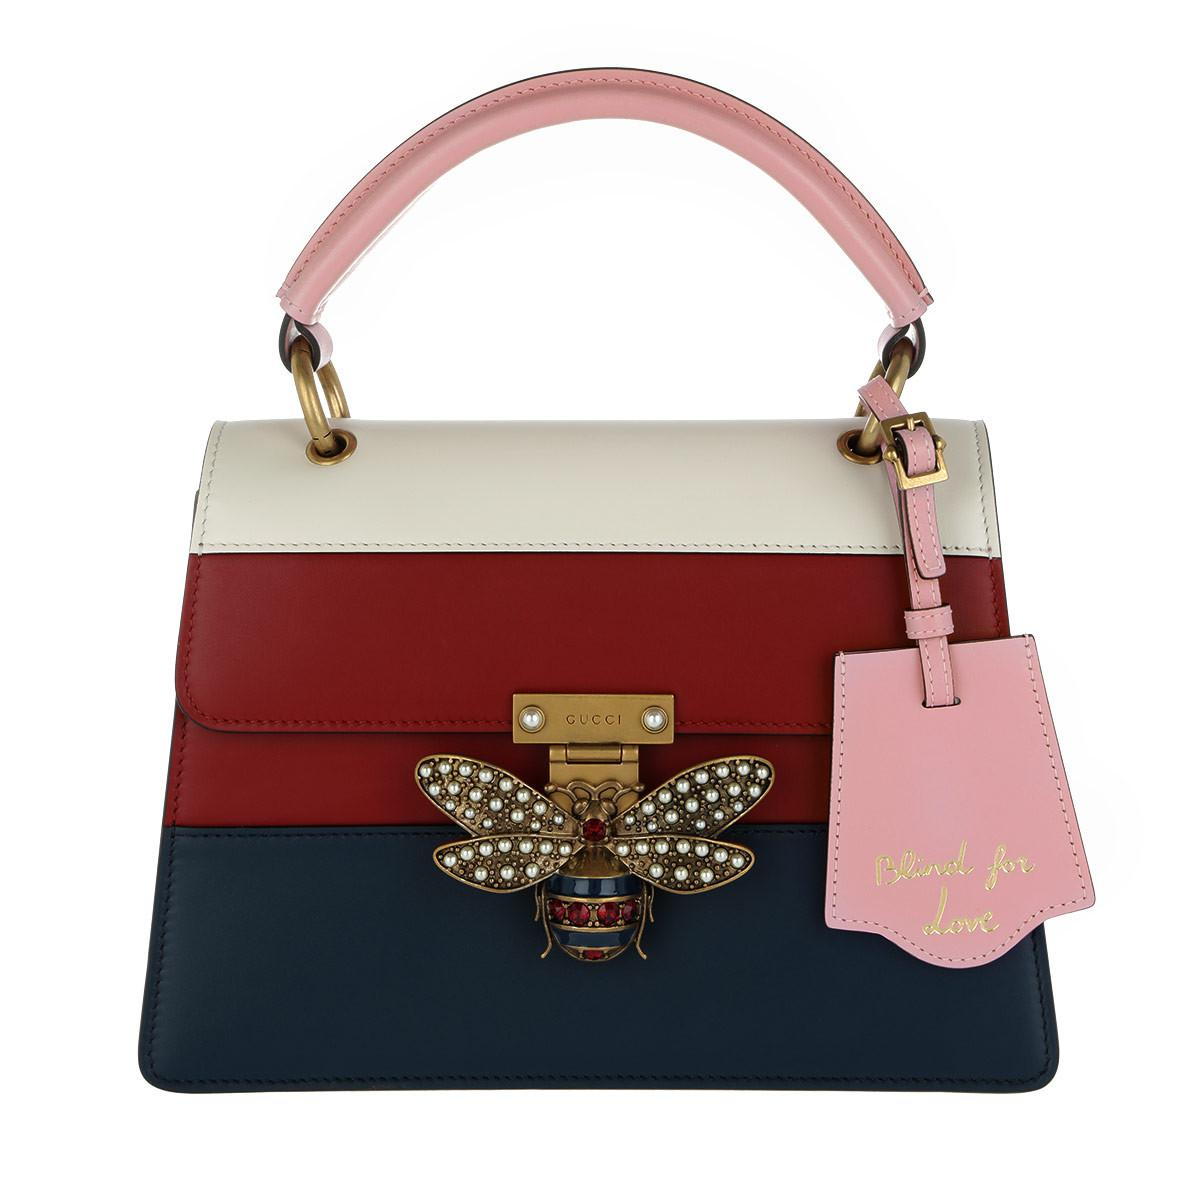 5199f22b1407 Gucci Queen Margaret Small Top Handle Bag Multicolor - Lyst